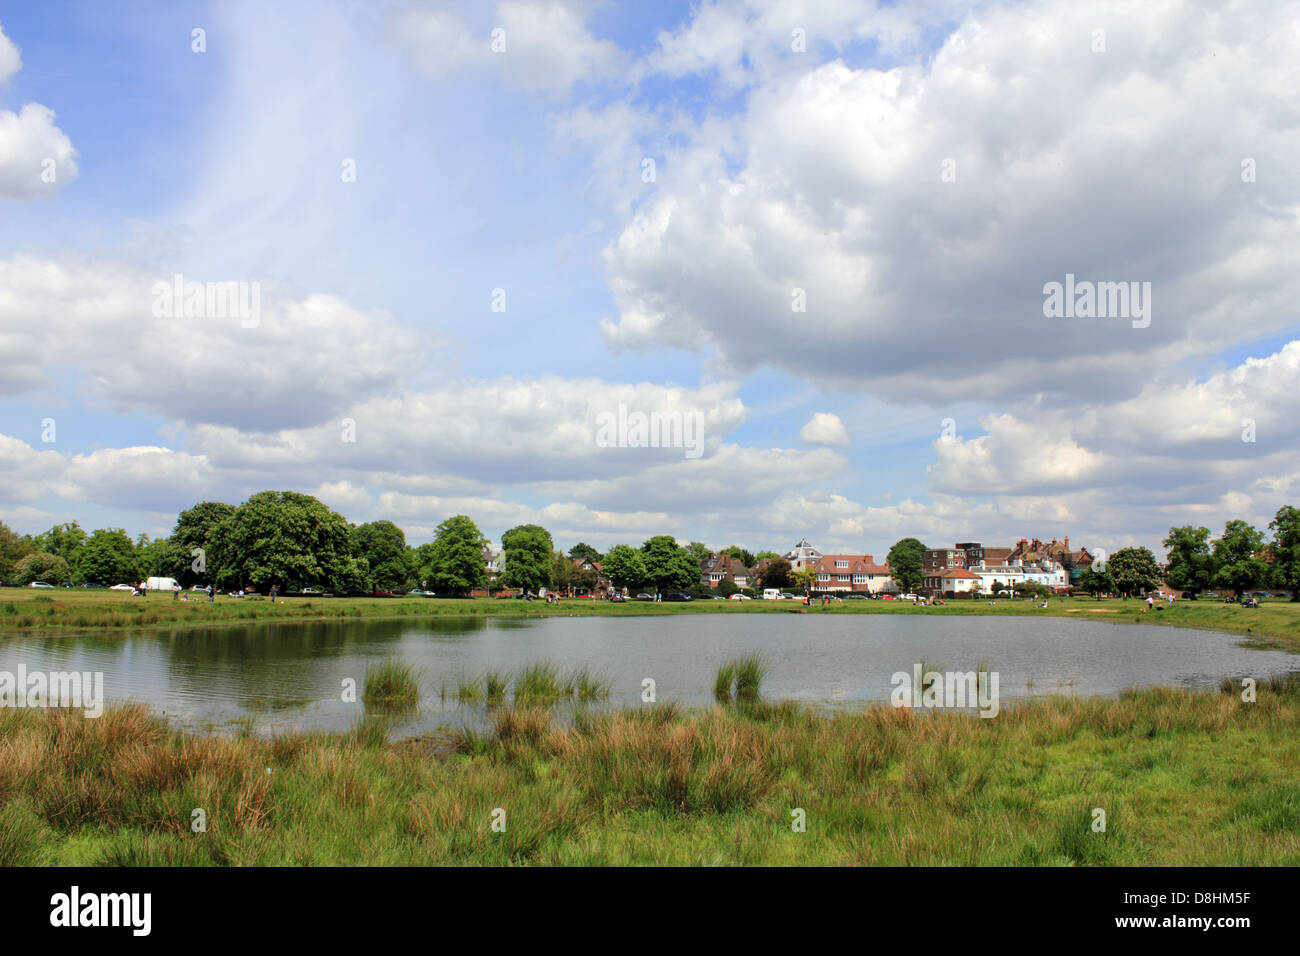 e336539c0c35c Wimbledon Common Summer Stock Photos & Wimbledon Common Summer Stock ...